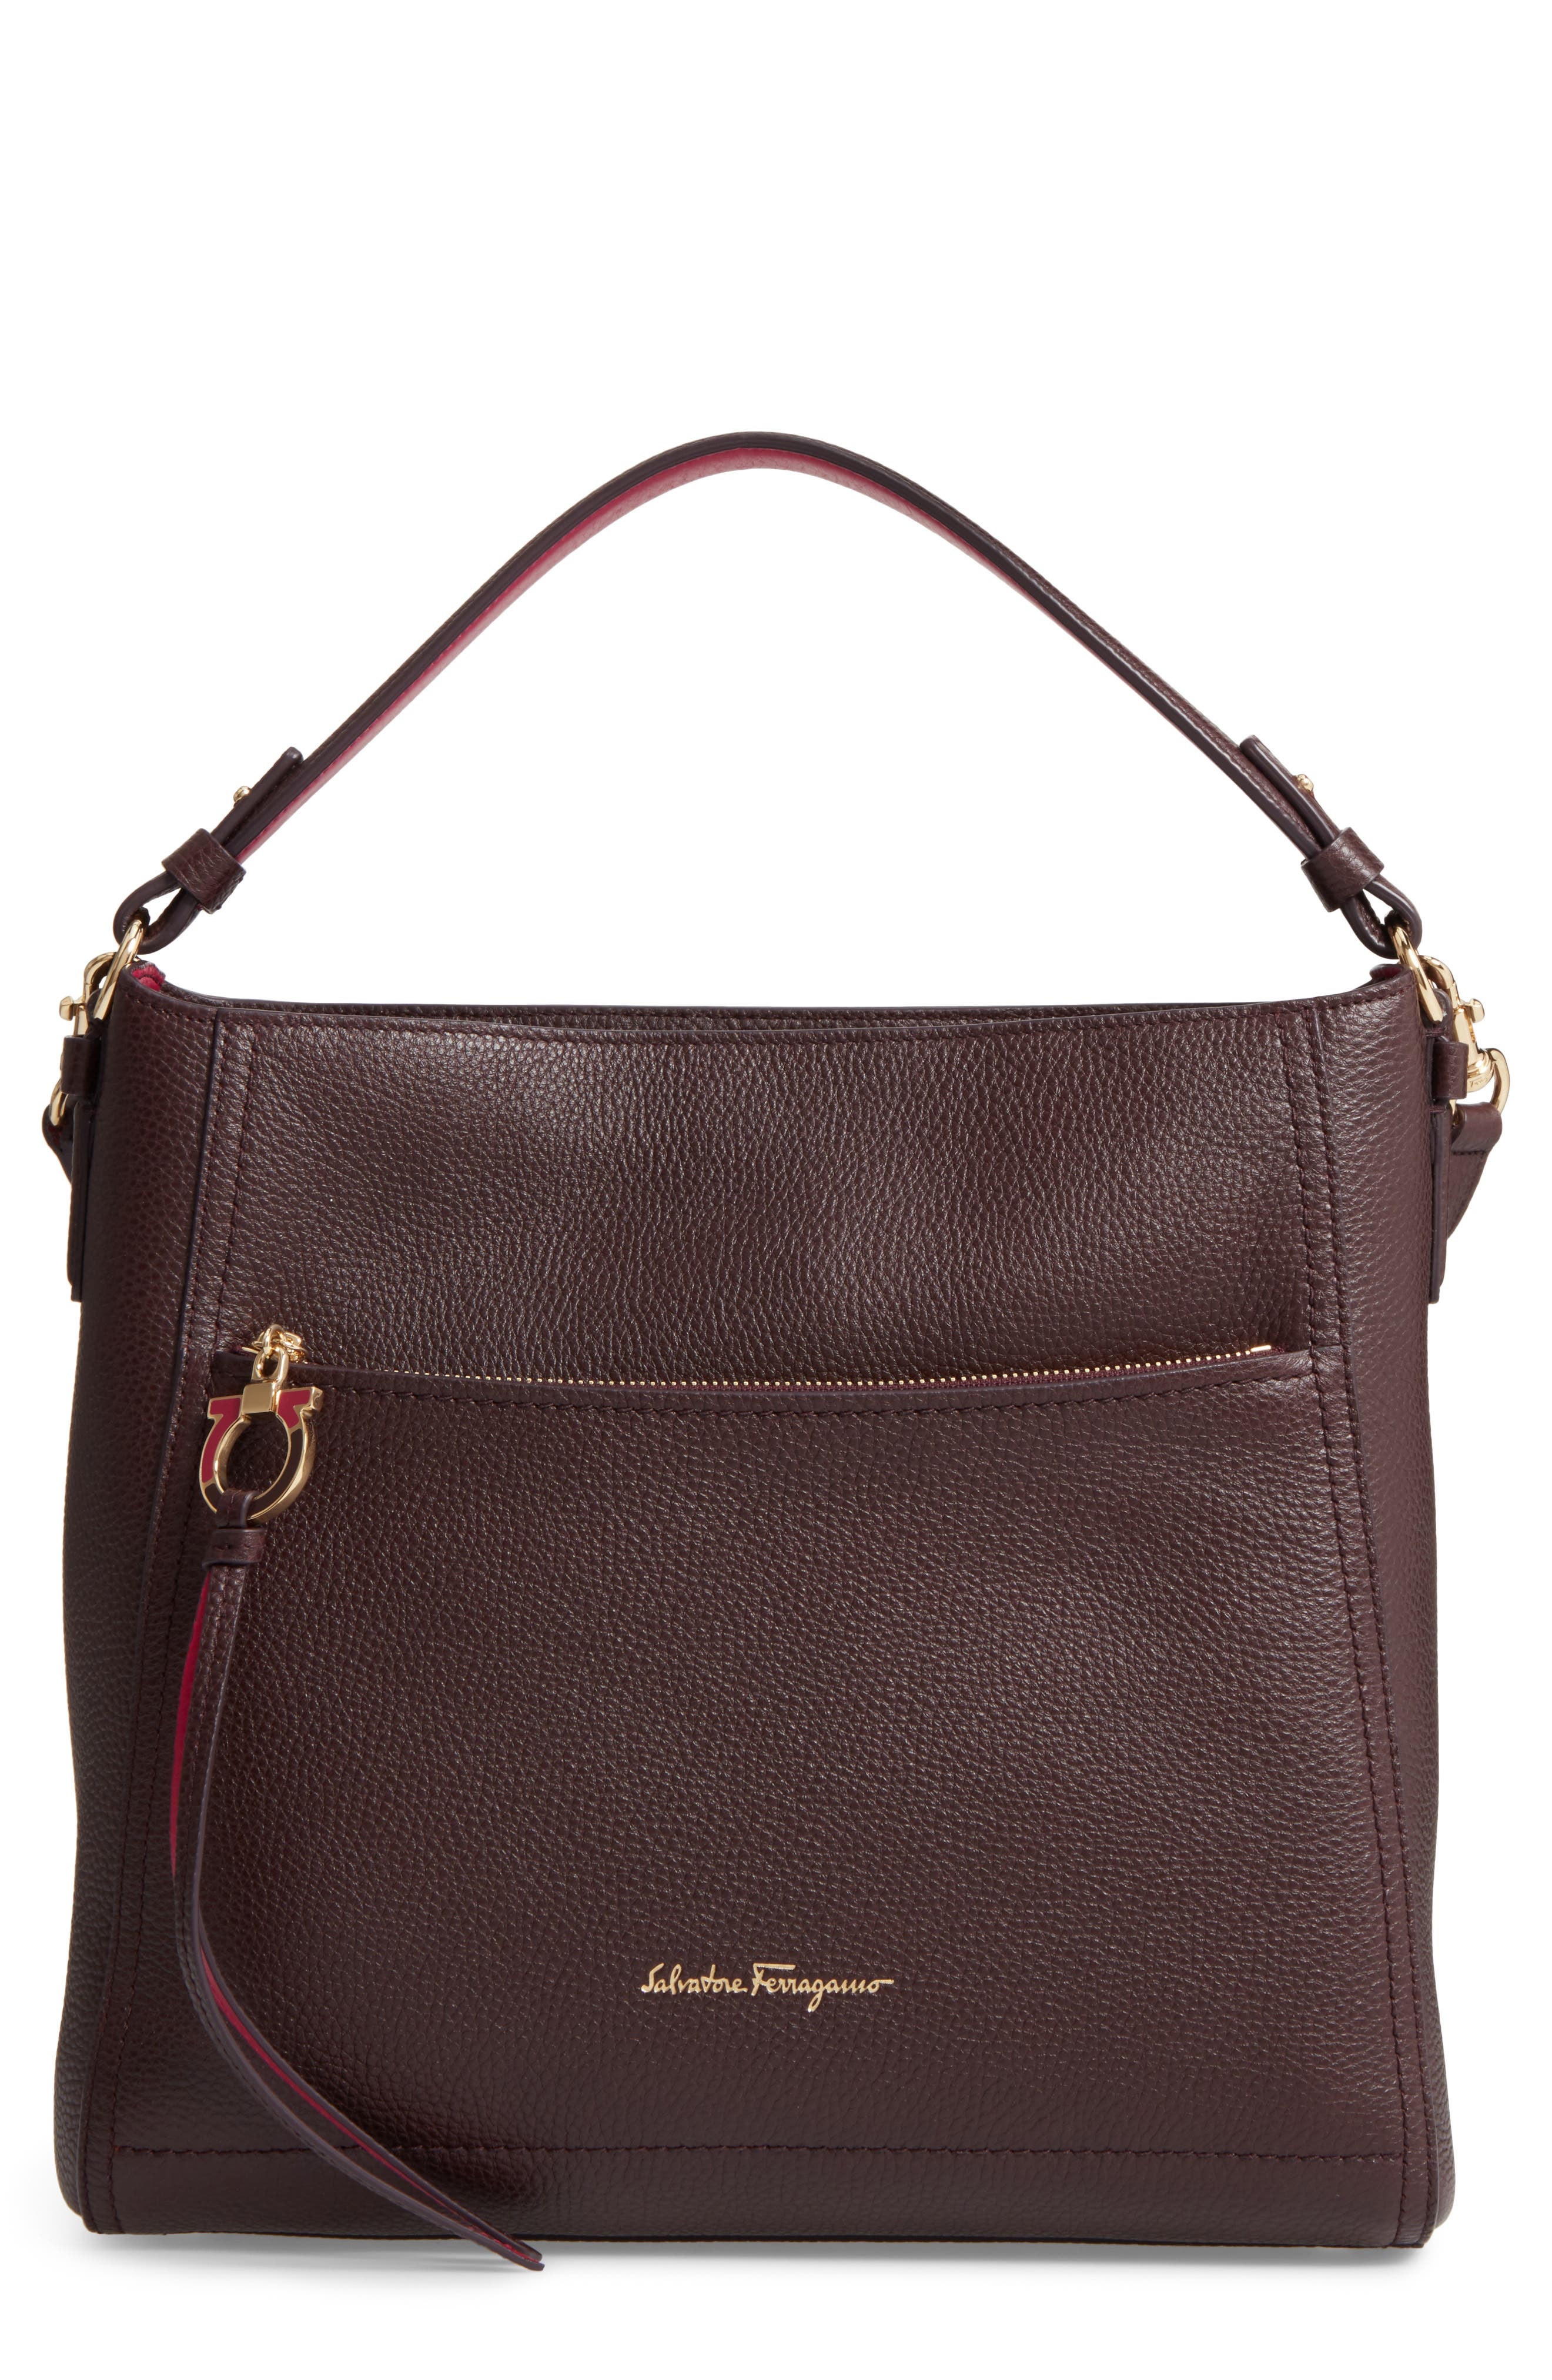 Medium Leather Top Handle Tote,                         Main,                         color, Deep Bord/ Pink